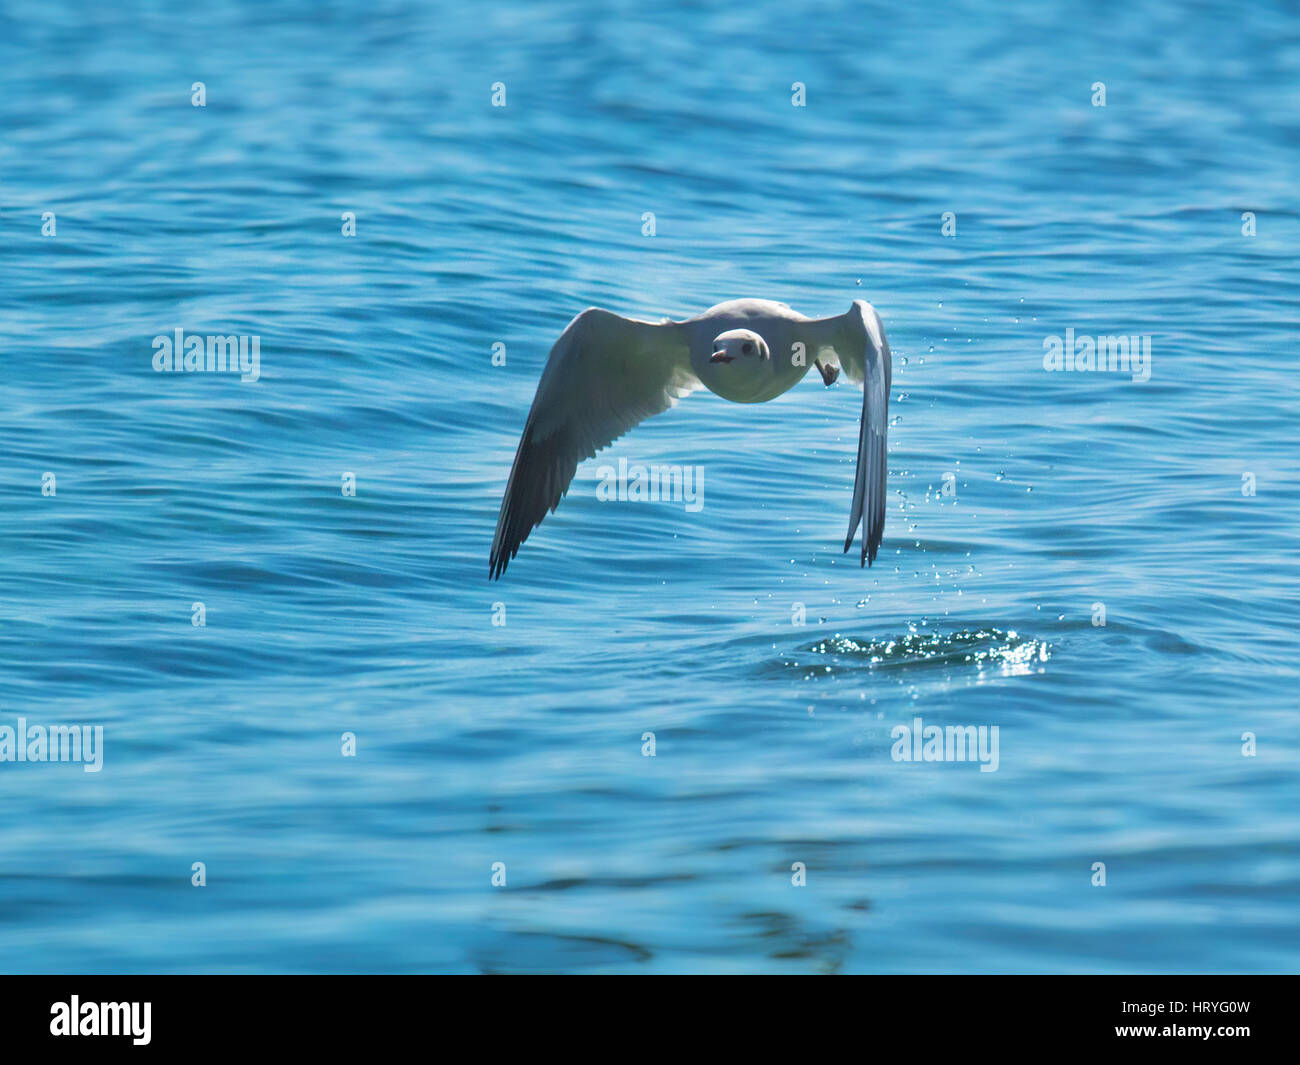 The seagull flies swiftly over the surface of the ocean - Stock Image